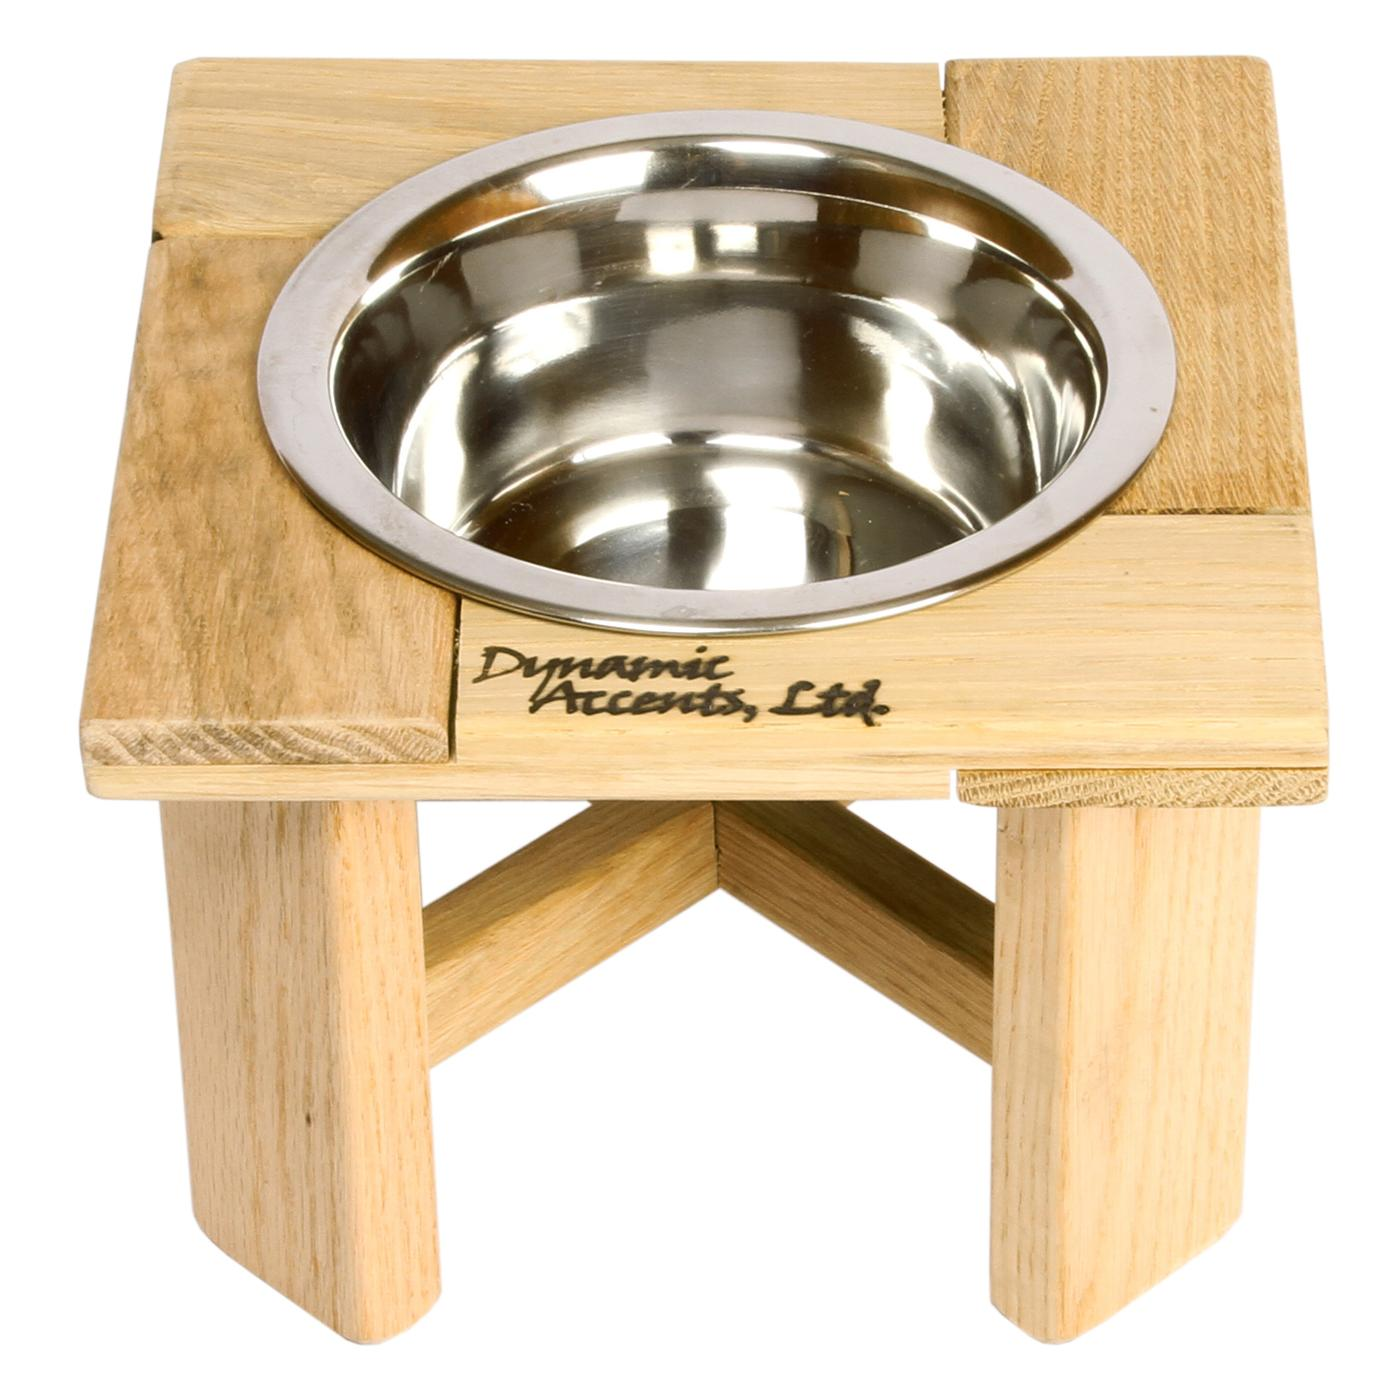 Outdoor Elavated Pet Feeders